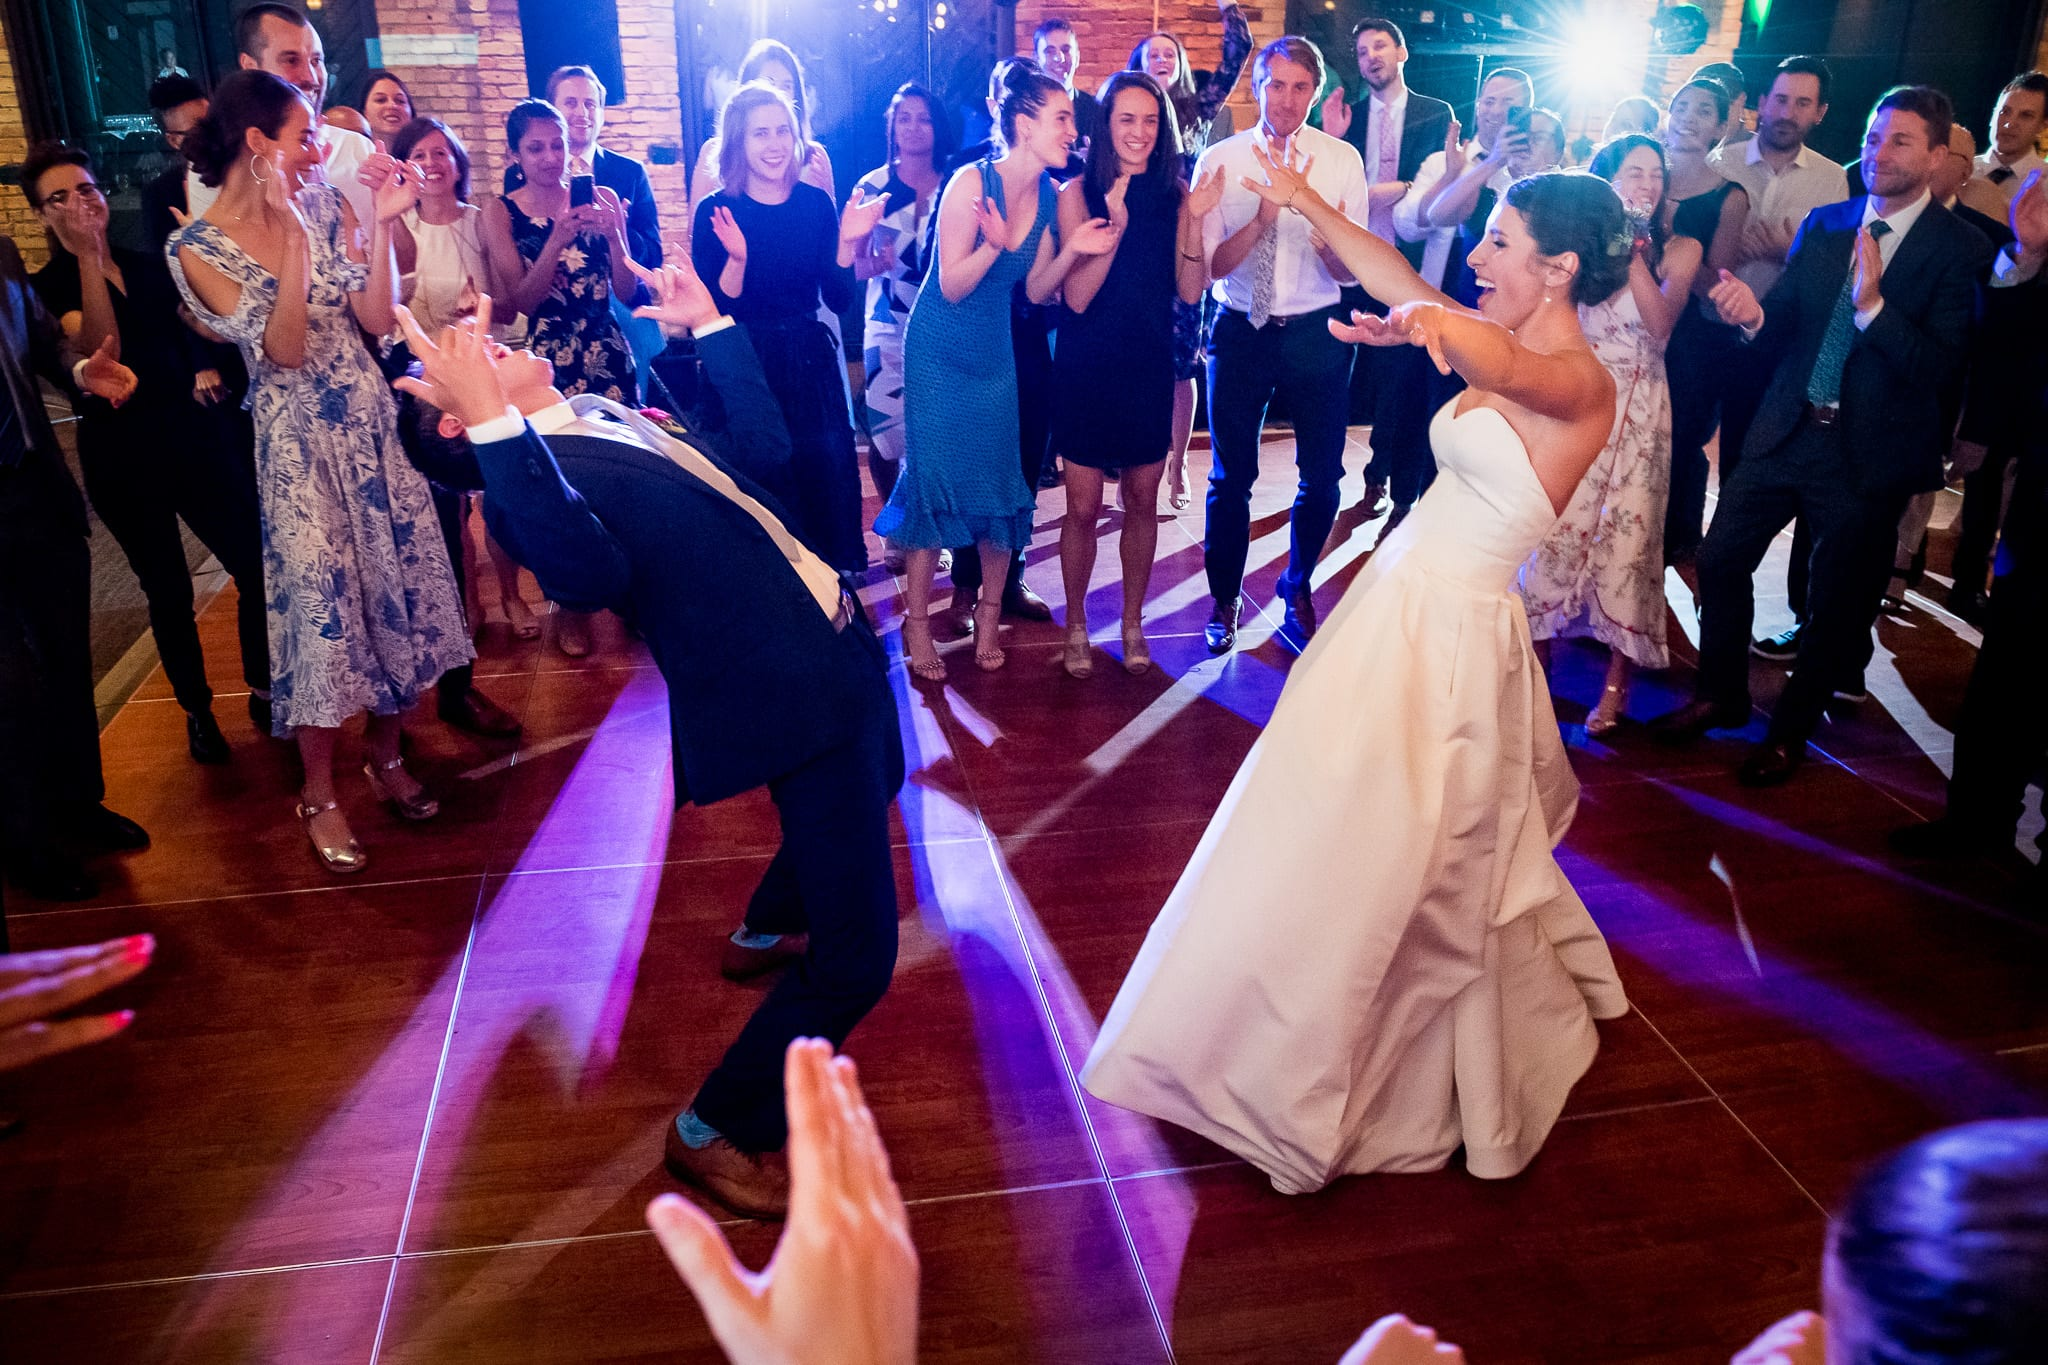 Groom bent all the way back and his bride raises her hands high as they dazzle their wedding guests on the dance floor